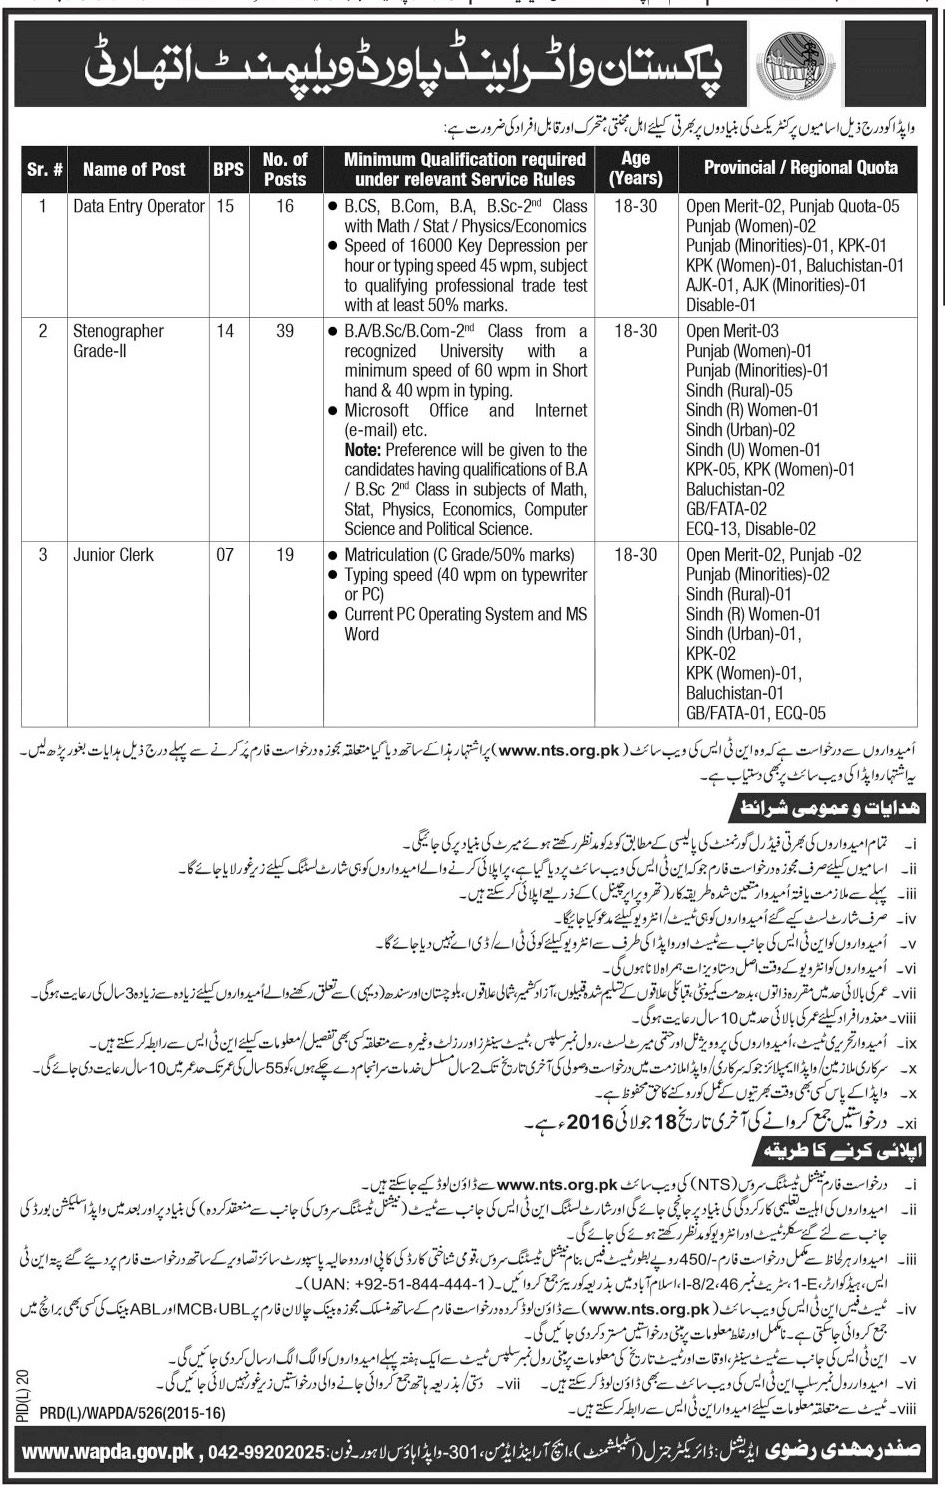 WAPDA Jobs From BPS-7 to BPS-15